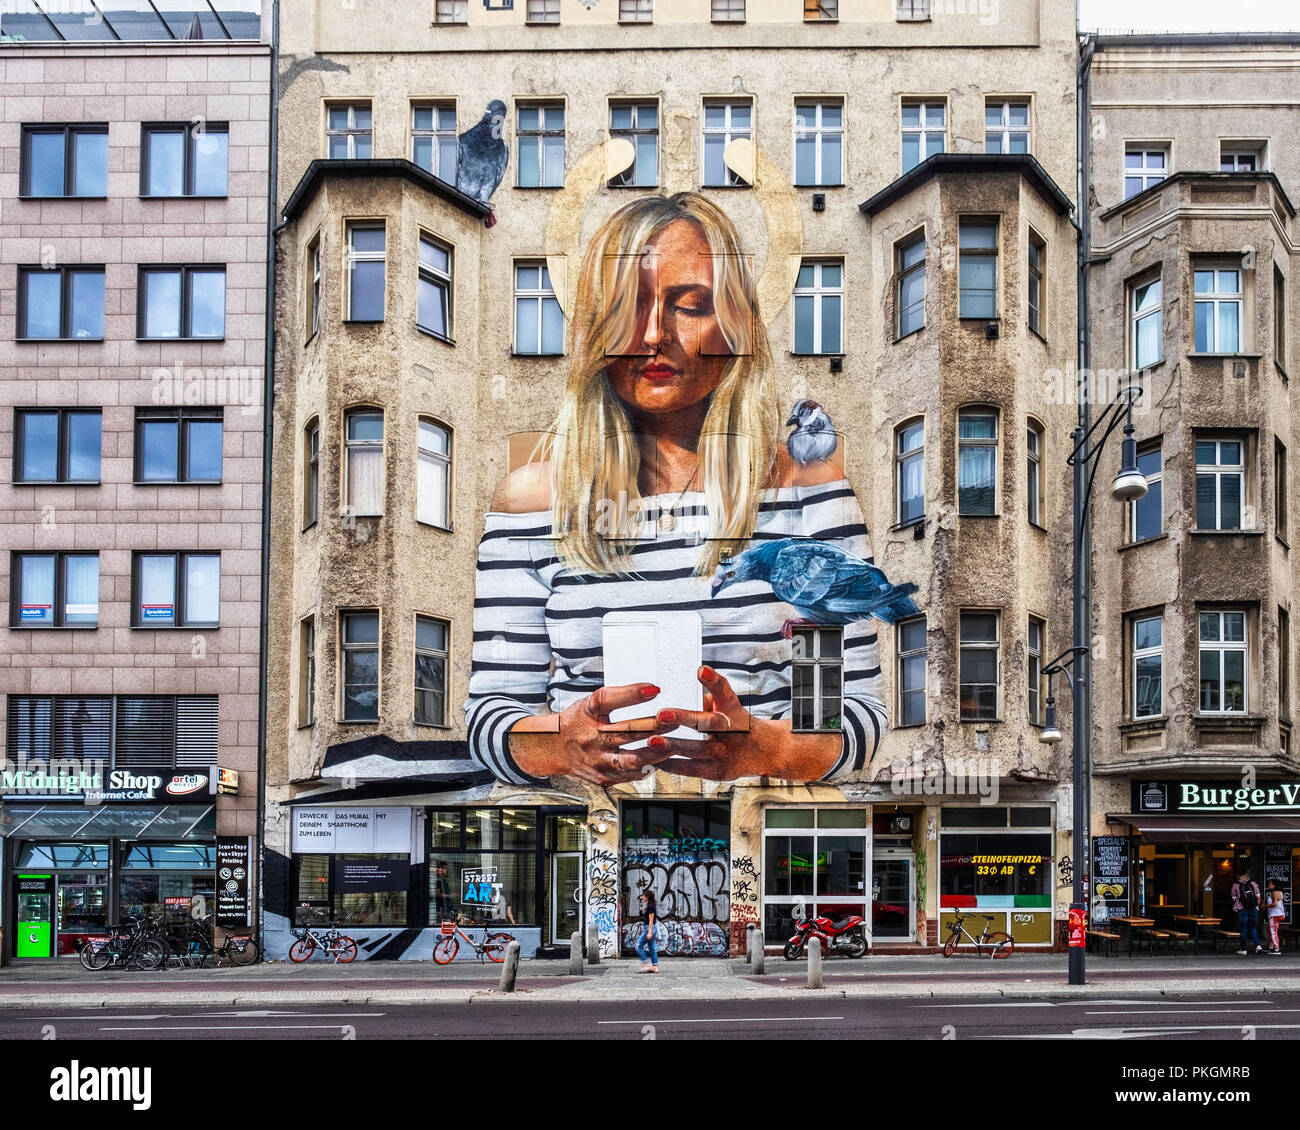 Berlin,Mitte. Re-Imagining Street Art. Art by Tape  That. Samsung Augmented reality Technology Brings ARt to Life in 5 Art labs during IFA 2018 Samsun - Stock Image